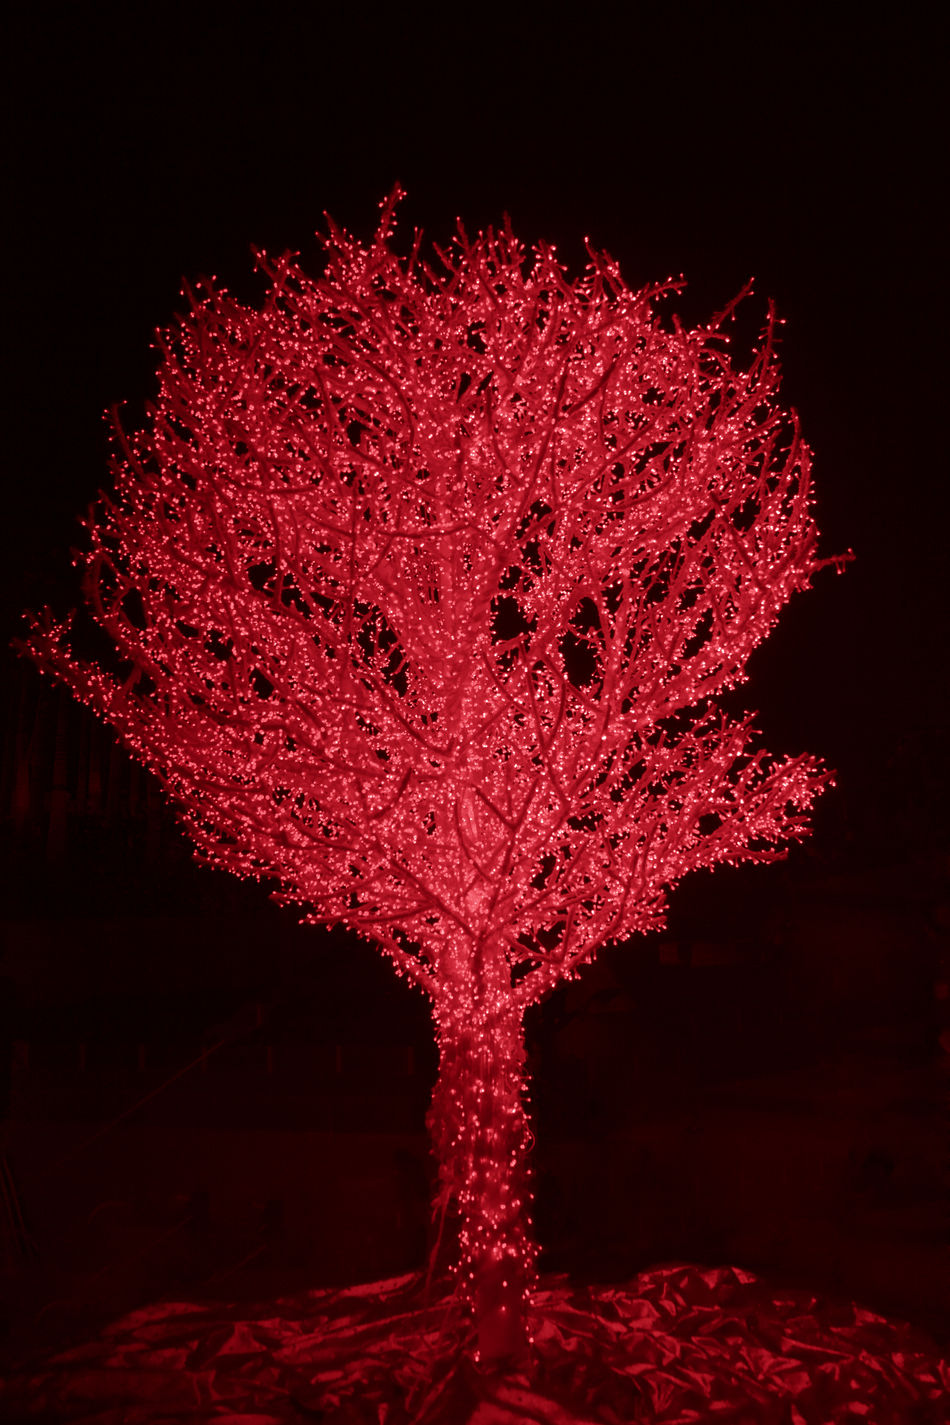 Red Tree decorated with fairy lights for Christmas - Hong Kong at Night, China, Asia Black Background Celebration Christmas Christmas Decoration Christmas Lights Christmas Tree Decoration Fairy Fairy Lights Full Length Hong Kong Illuminated Light Lights Merry Christmas! Nature Neon Lights Night Red Single Tree Tree Xmas Xmas Decorations Xmas Lights  Xmas Tree